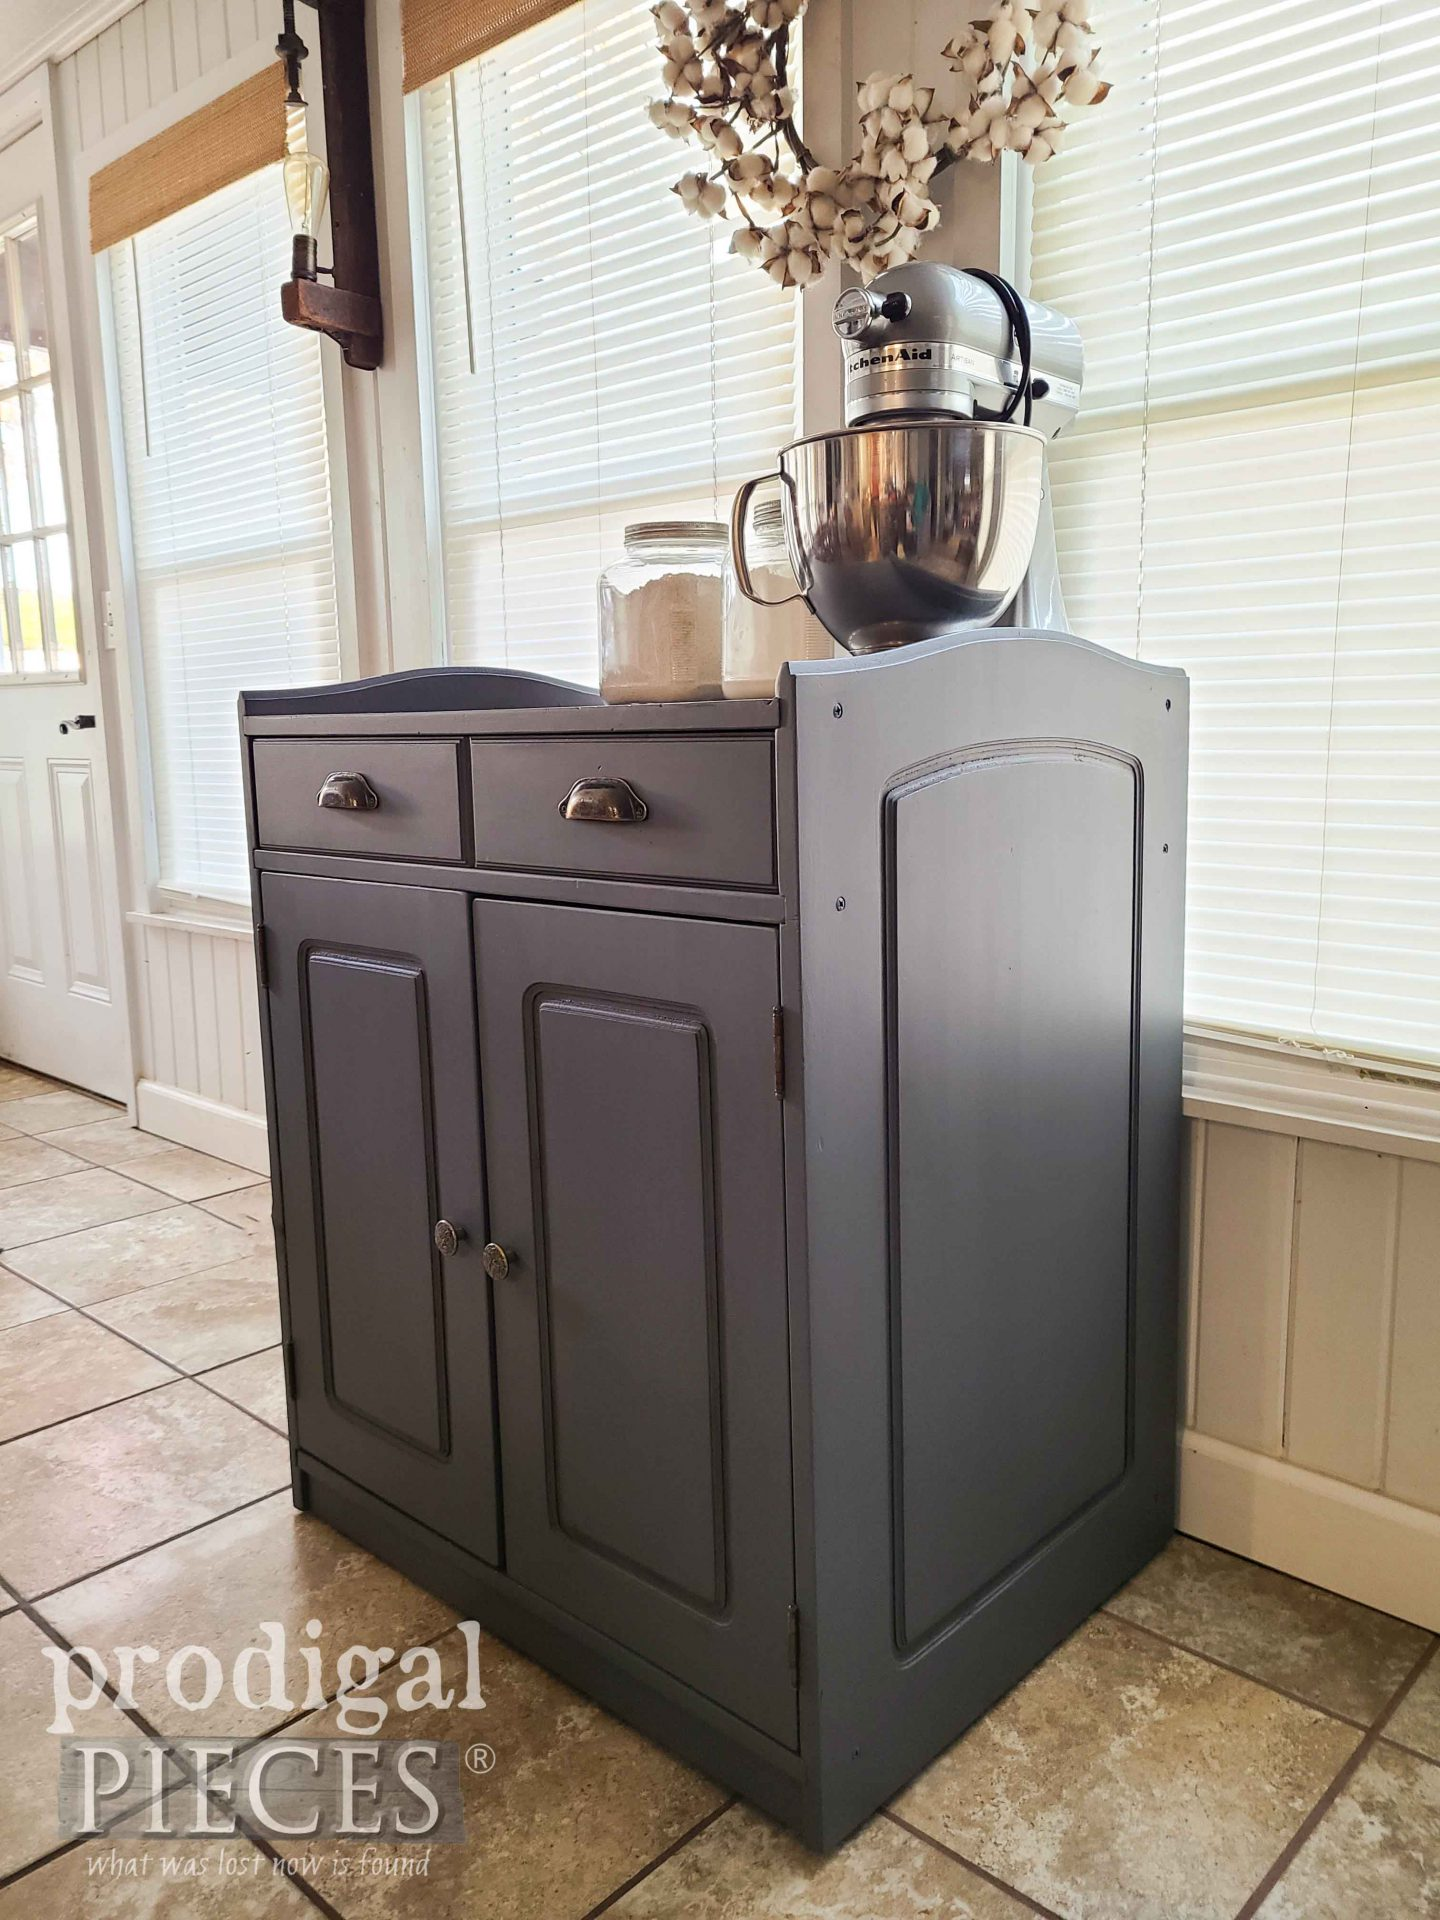 Modern Farmhouse Style Mobile Baking Cabinet by Larissa of Prodigal Pieces | prodigalpieces.com #prodigalpieces #farmhouse #furniture #home #kitchen